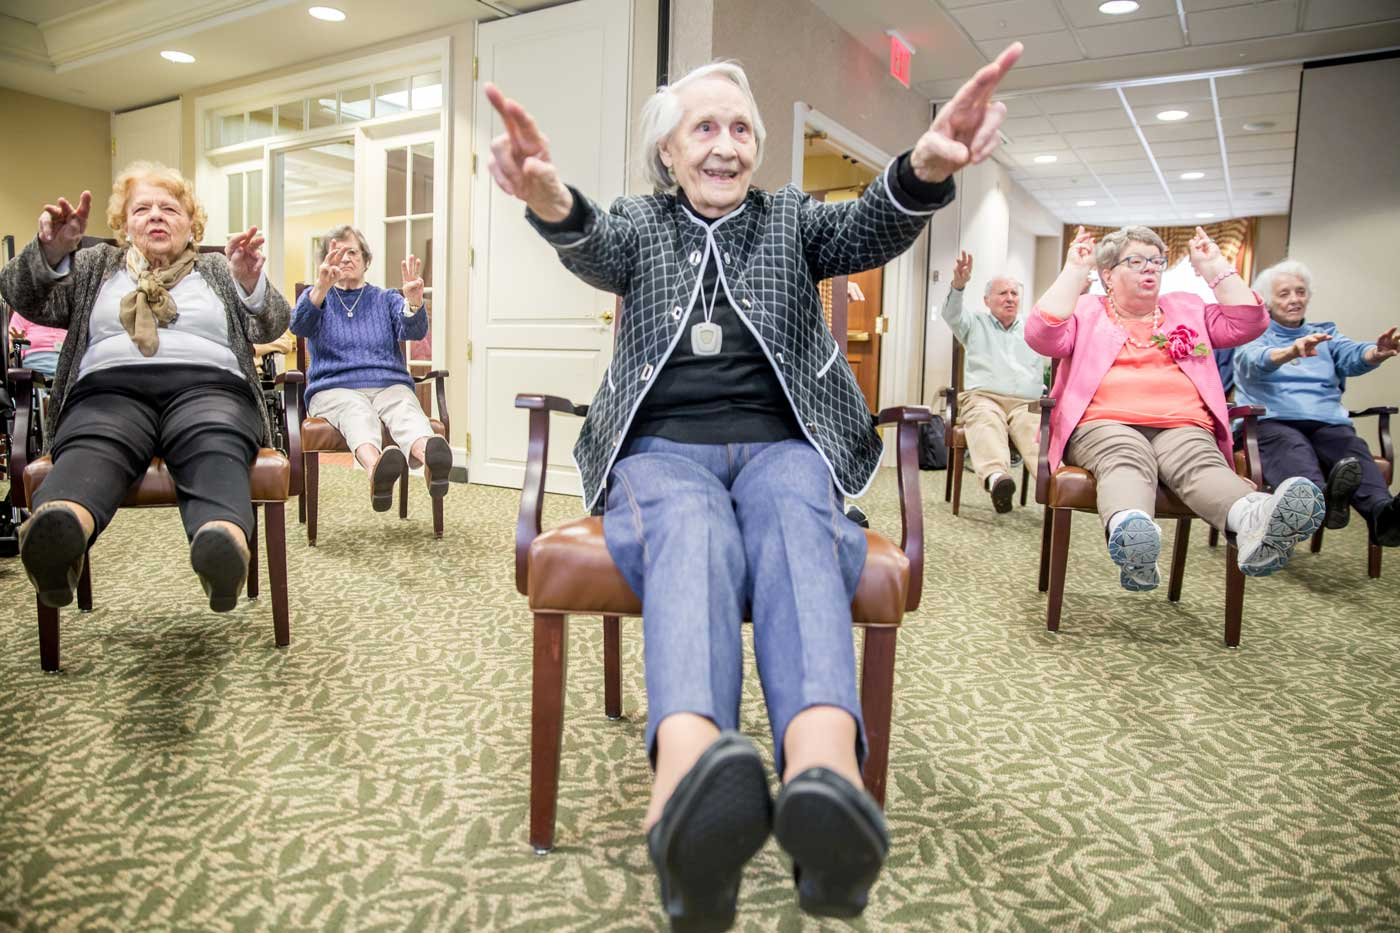 Assisted living care physical activities